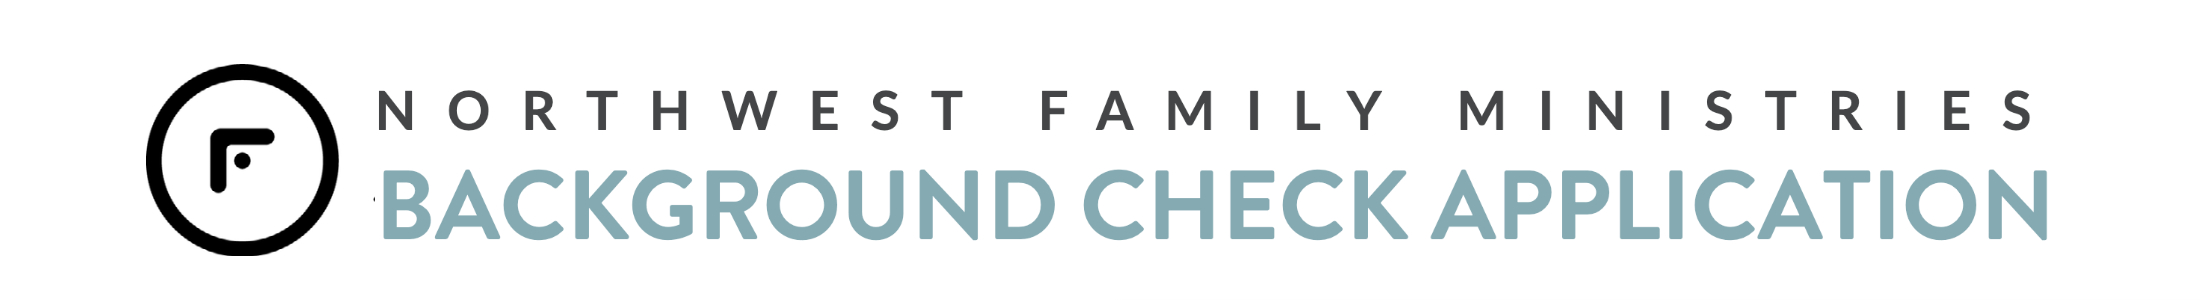 NW Family Ministries Background Check Application